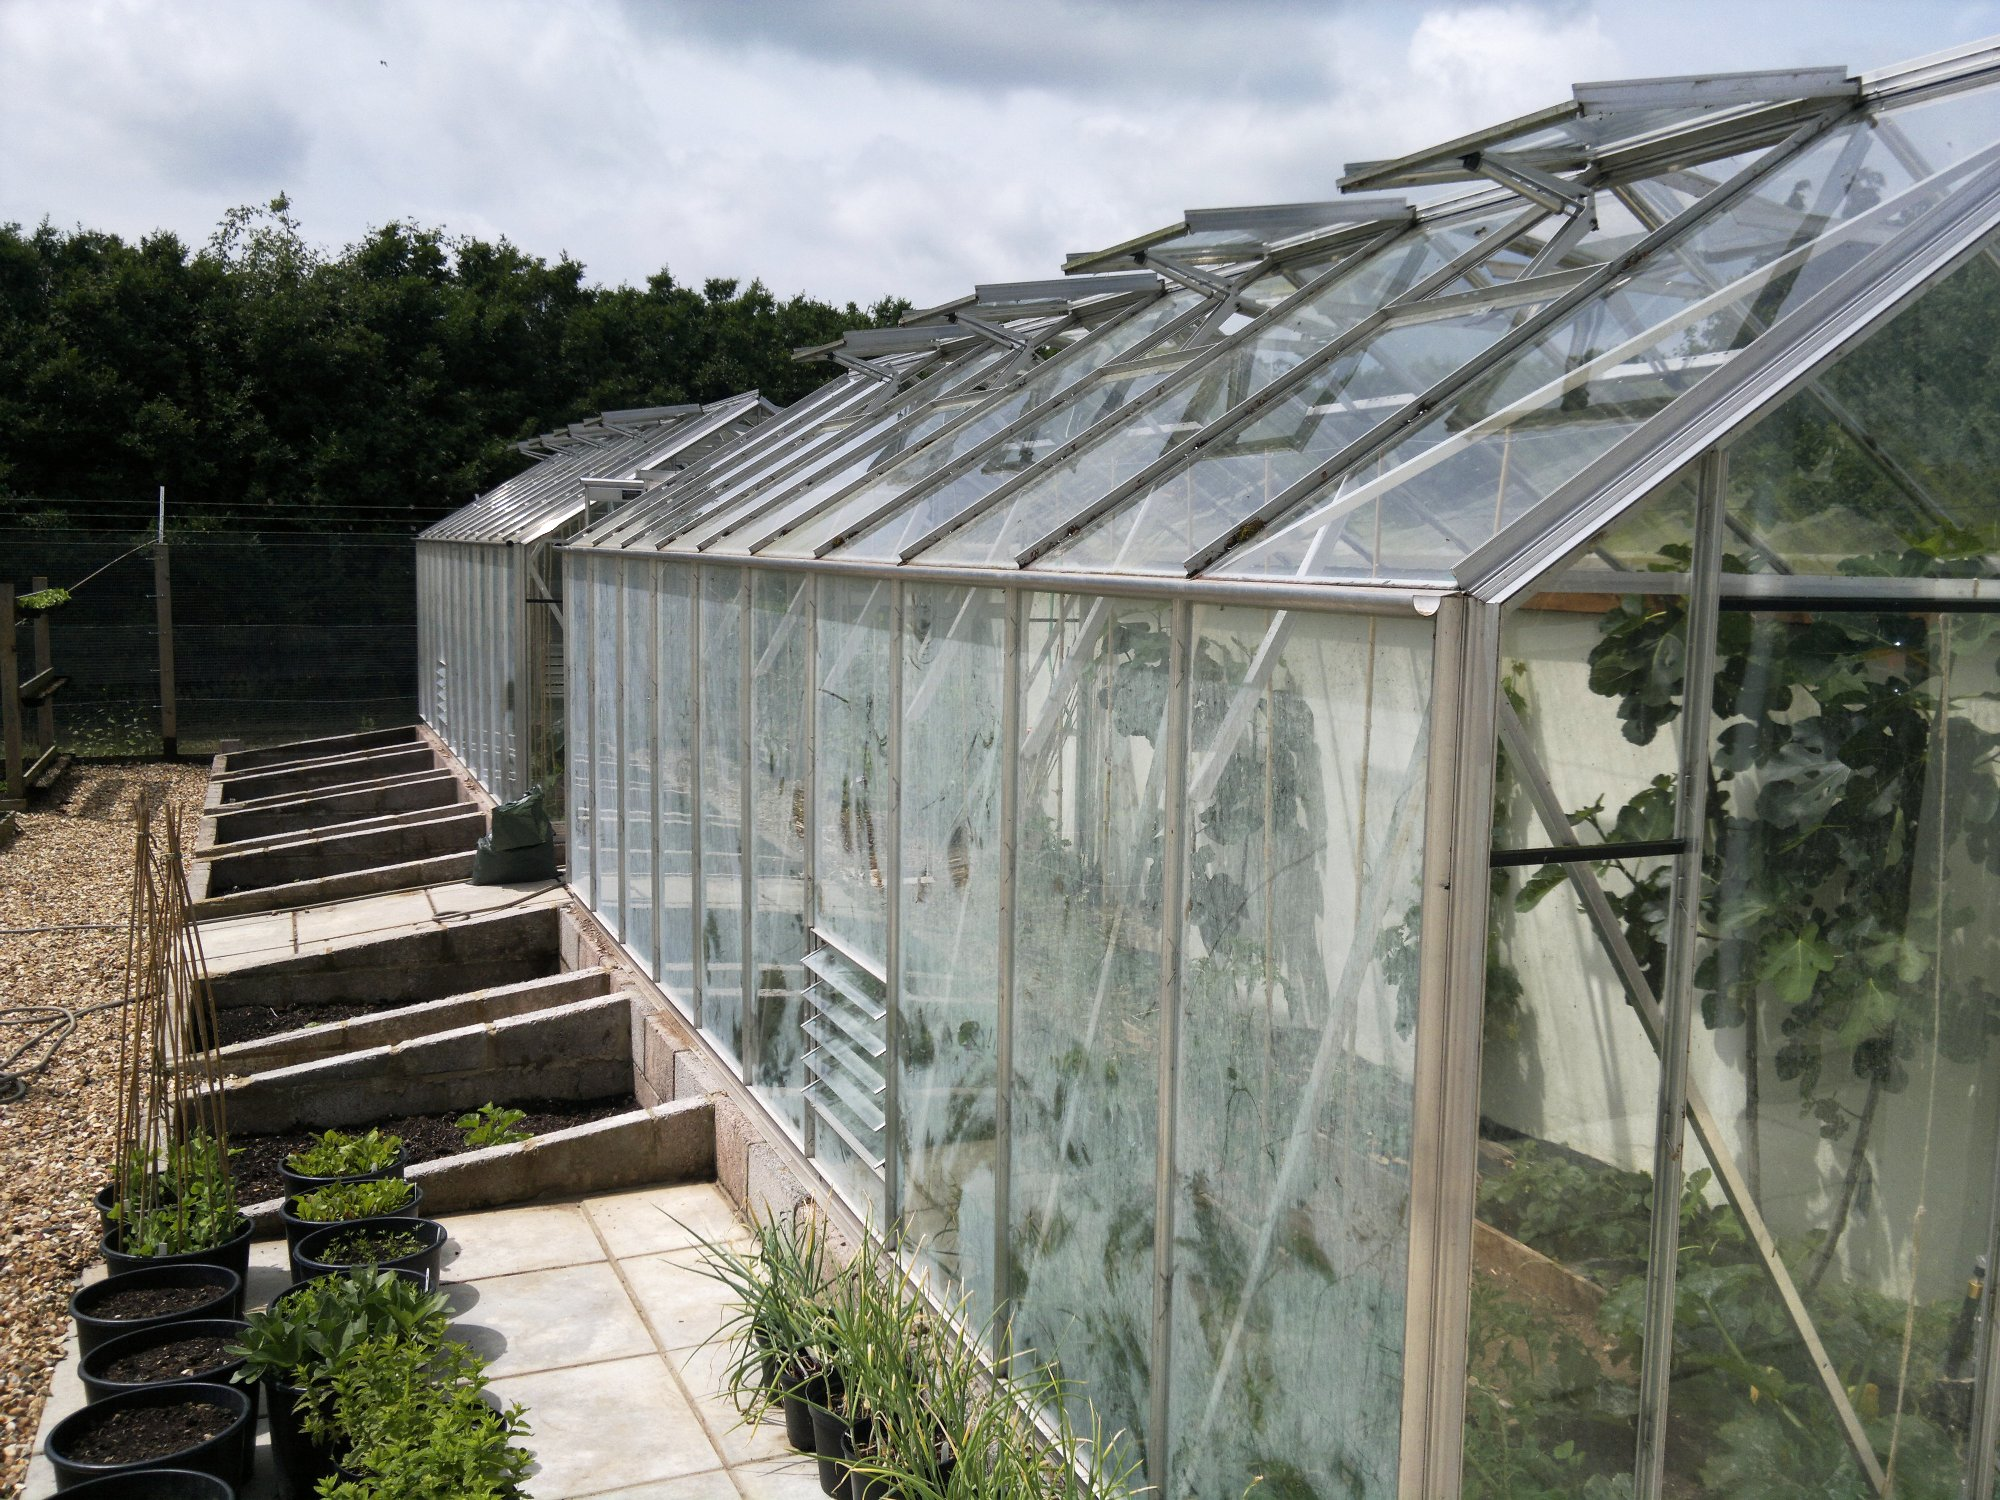 Glasshouses and coldframes; lights for the frames still need to be built